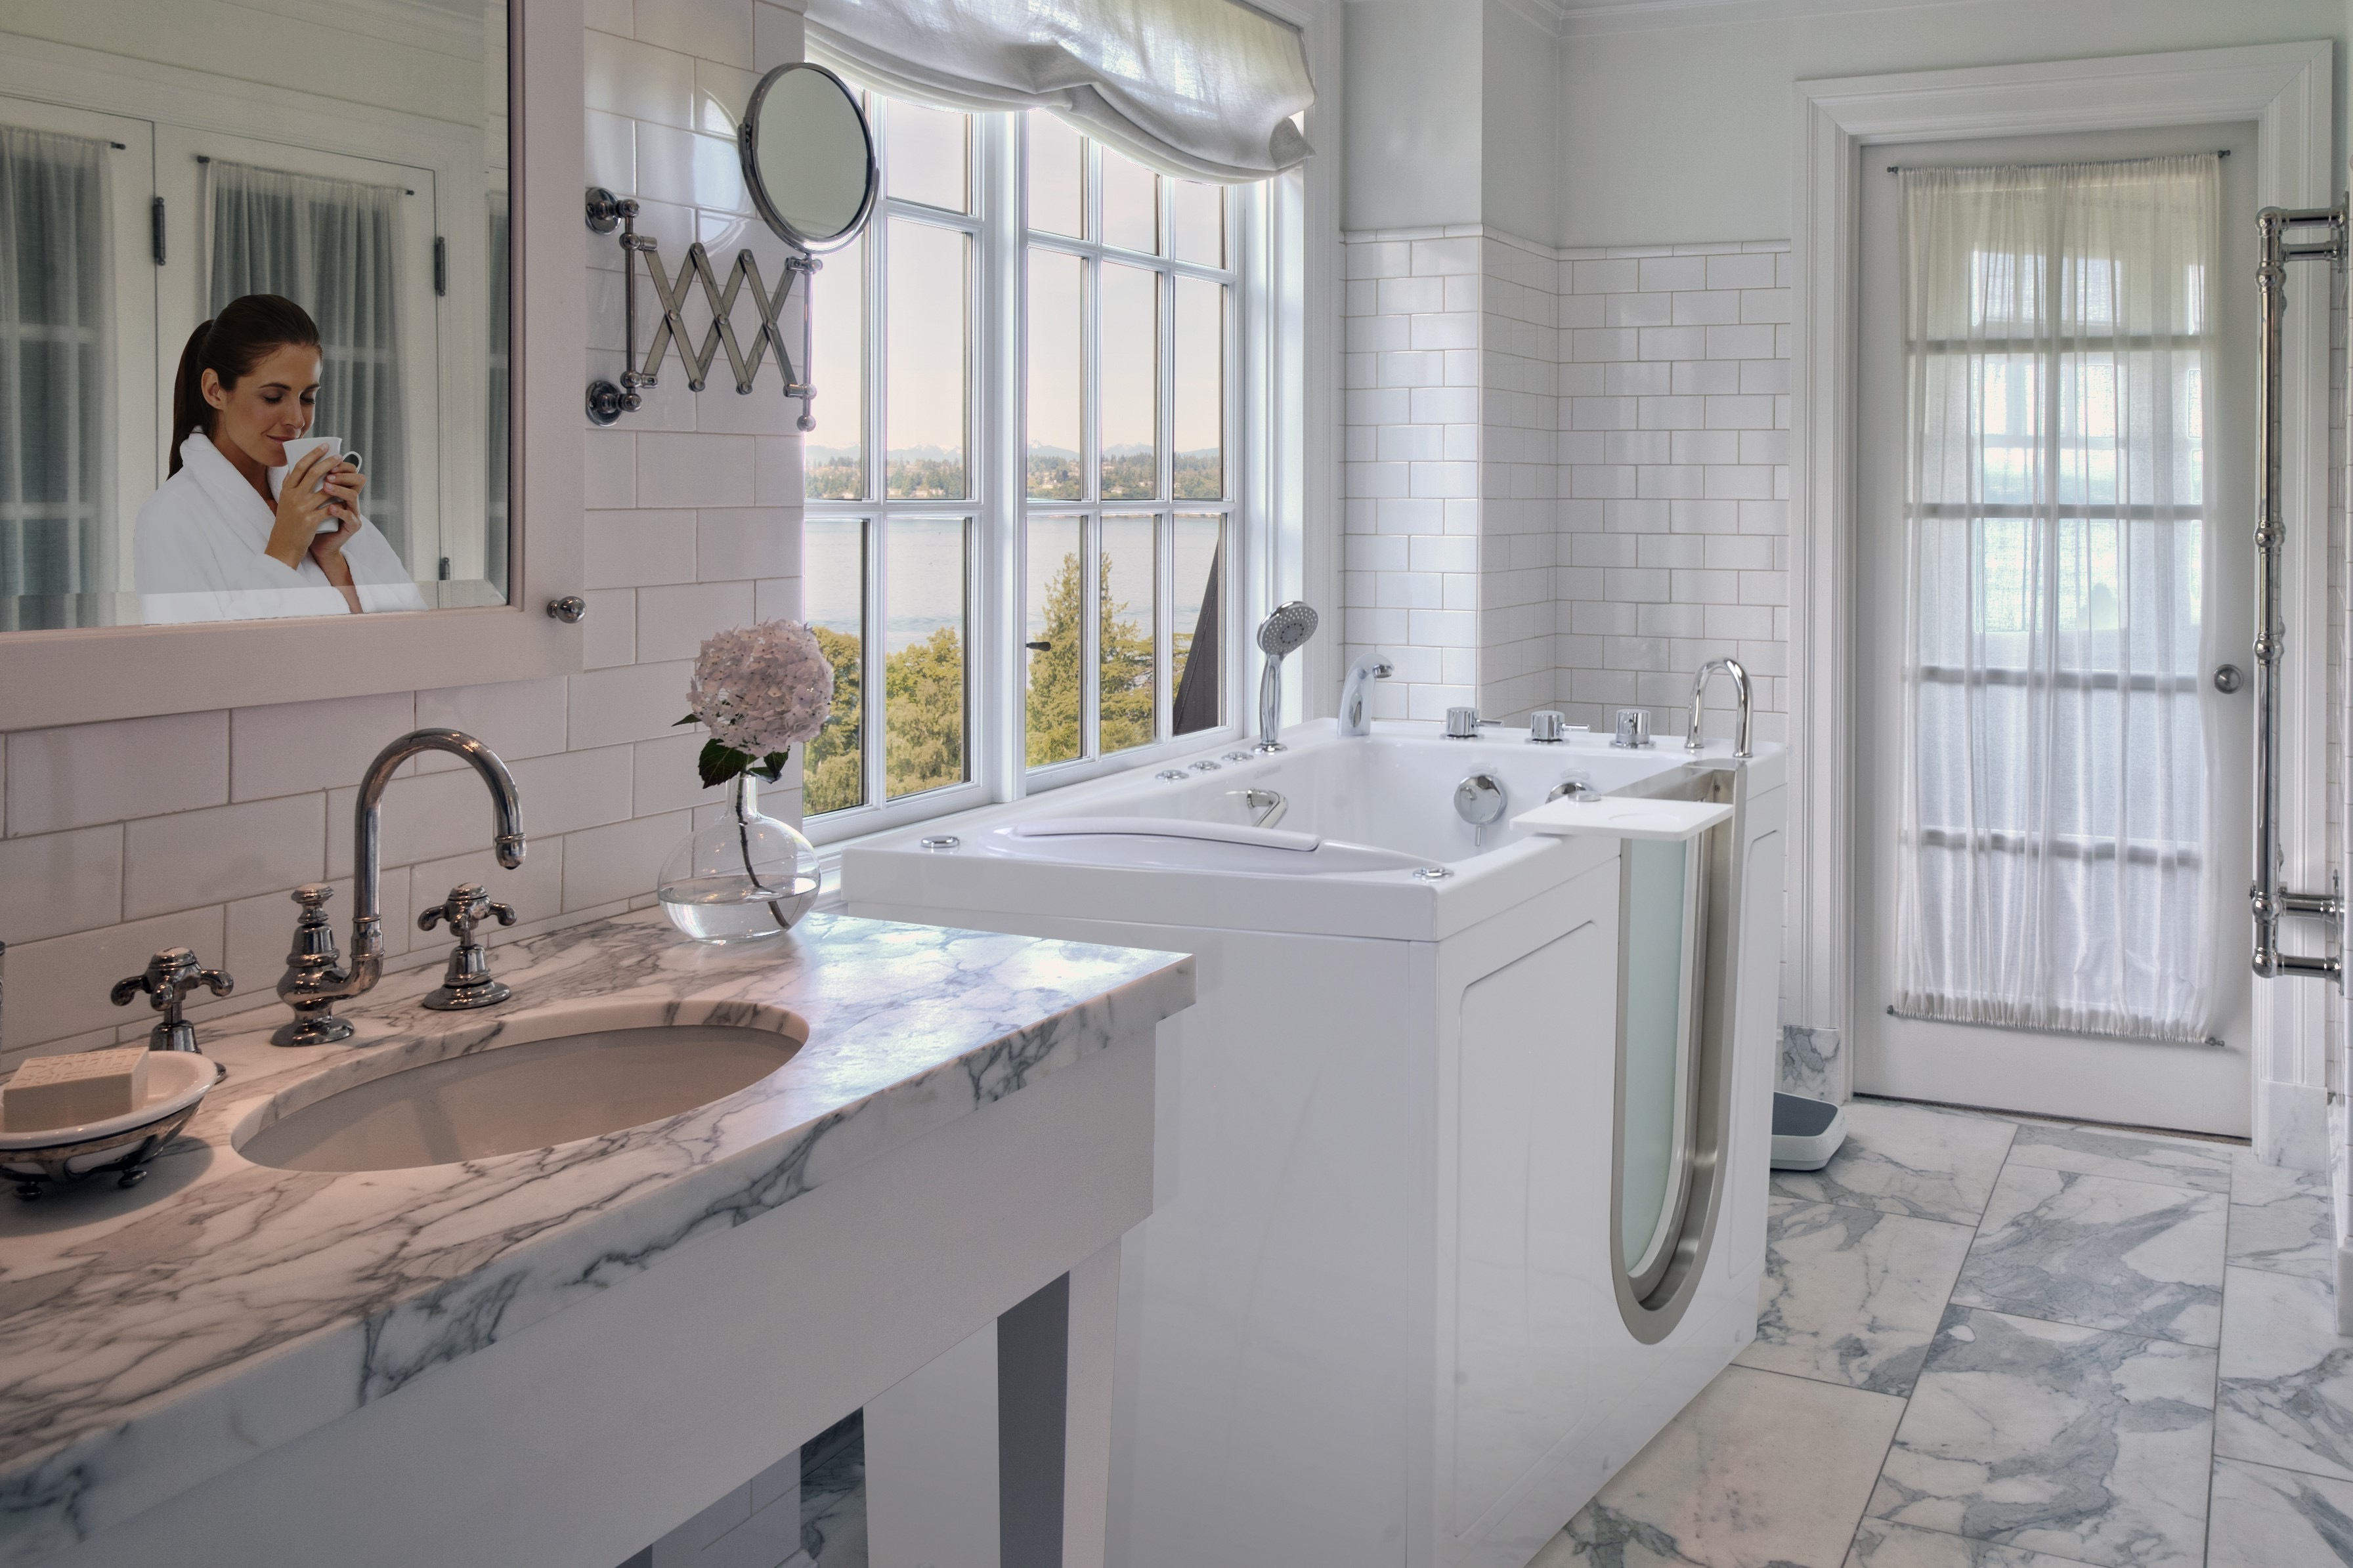 Modern Walk In Tub With Brick Wall Decor (Image 9 of 15)